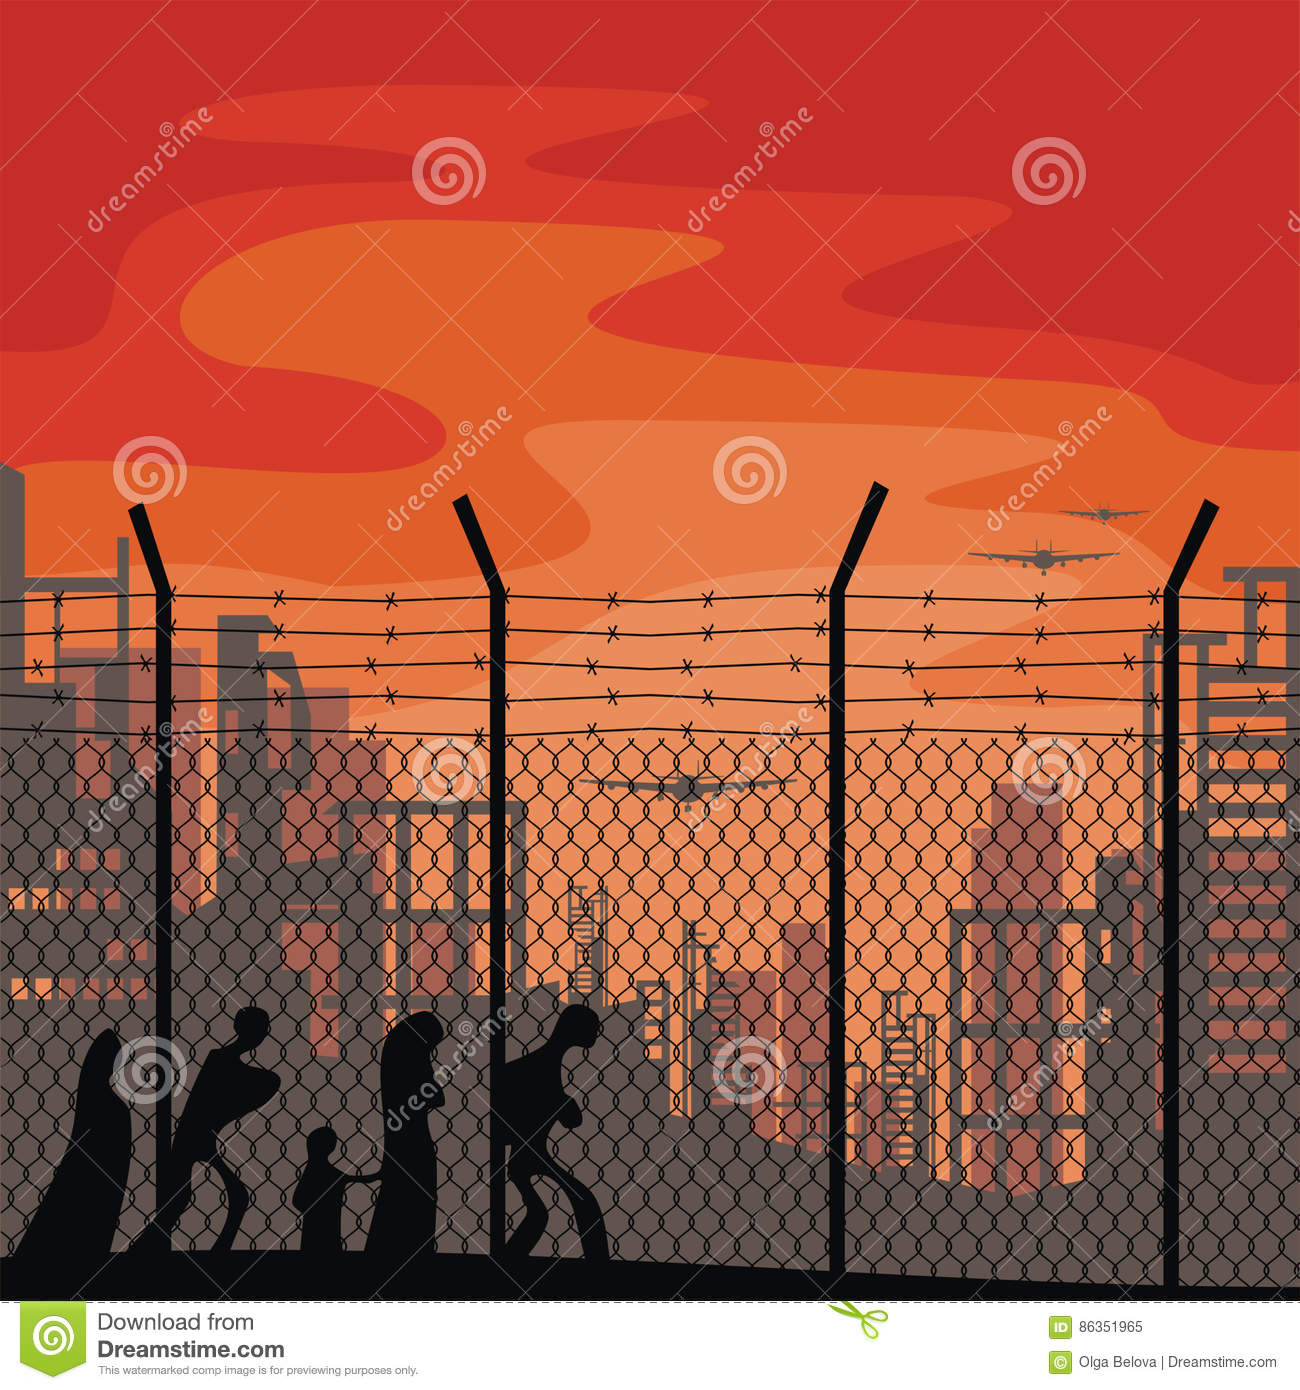 poster template about refugees stock vector illustration of